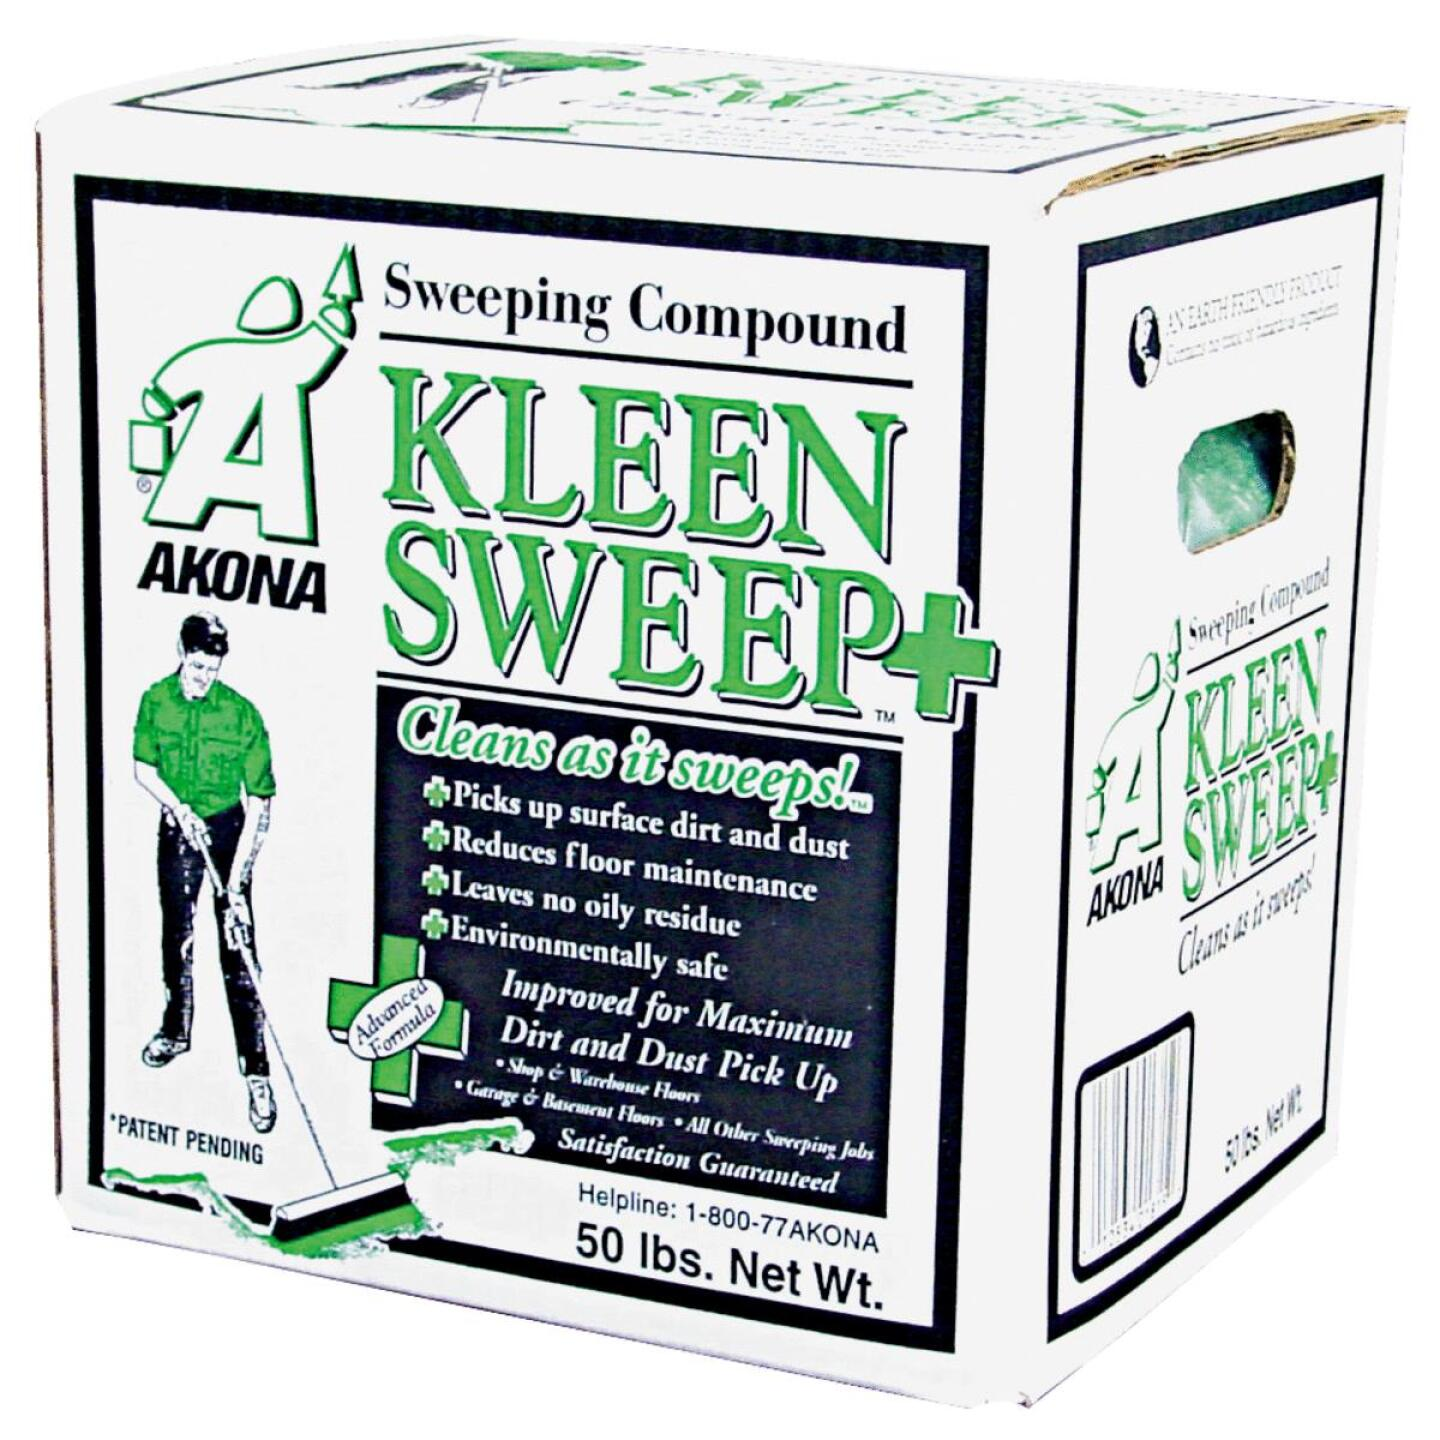 Kleen Sweep 50 Lb. Sweeping Compound Image 1